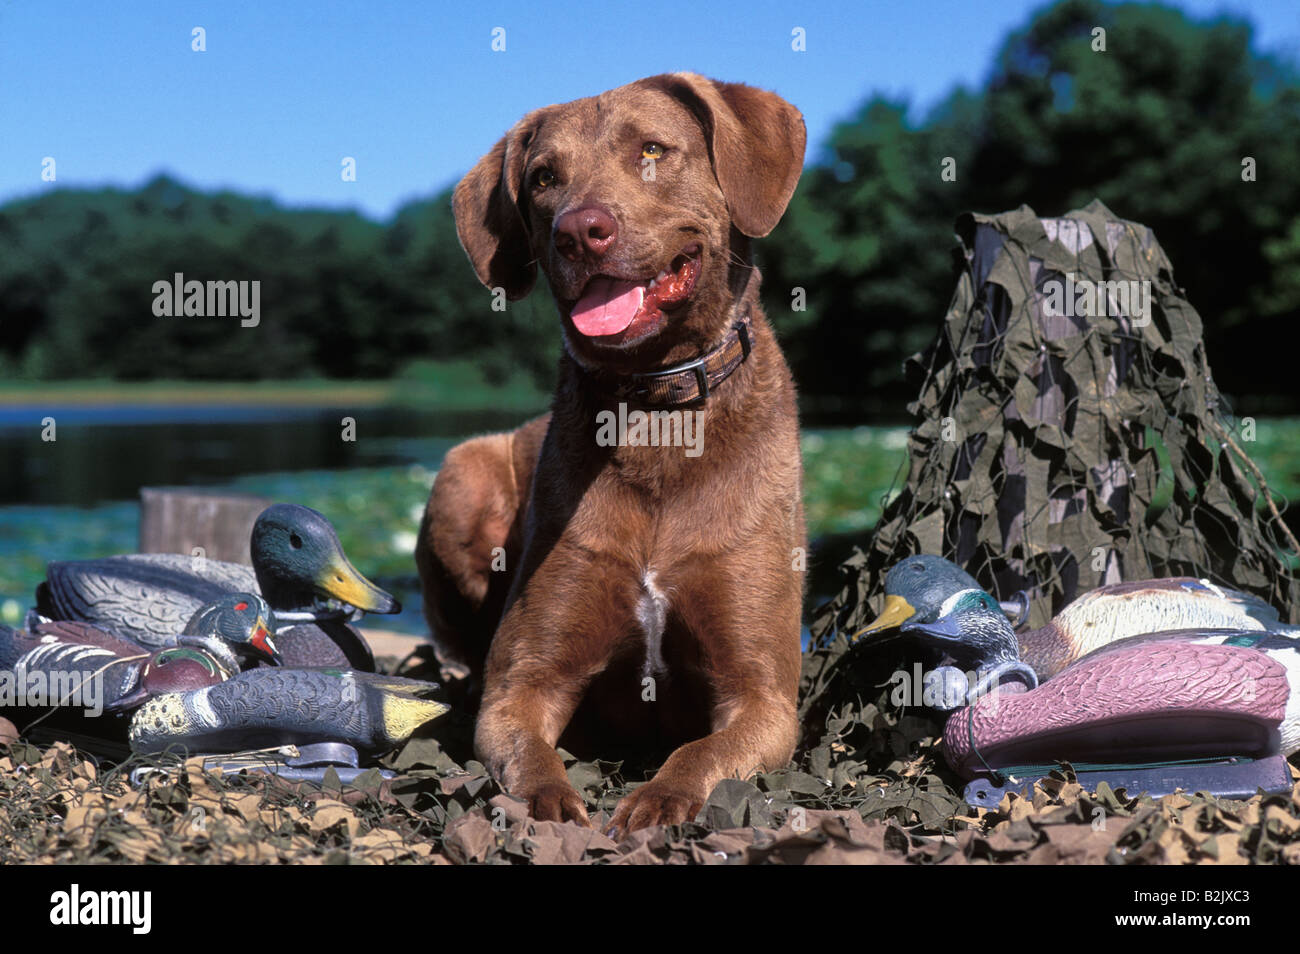 Chesapeake Bay Retriever on Dock Surrounded by Camouflage Netting and Duck Decoys - Stock Image